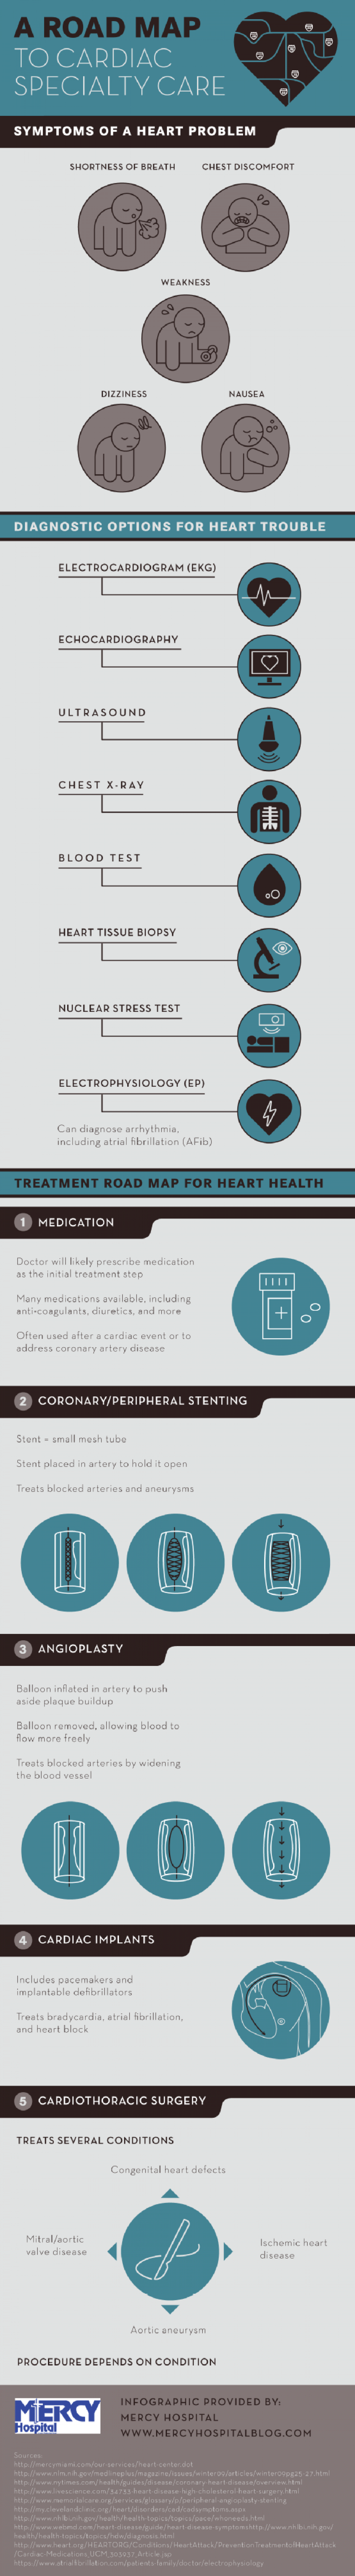 A Road Map to Cardiac Specialty Care Infographic